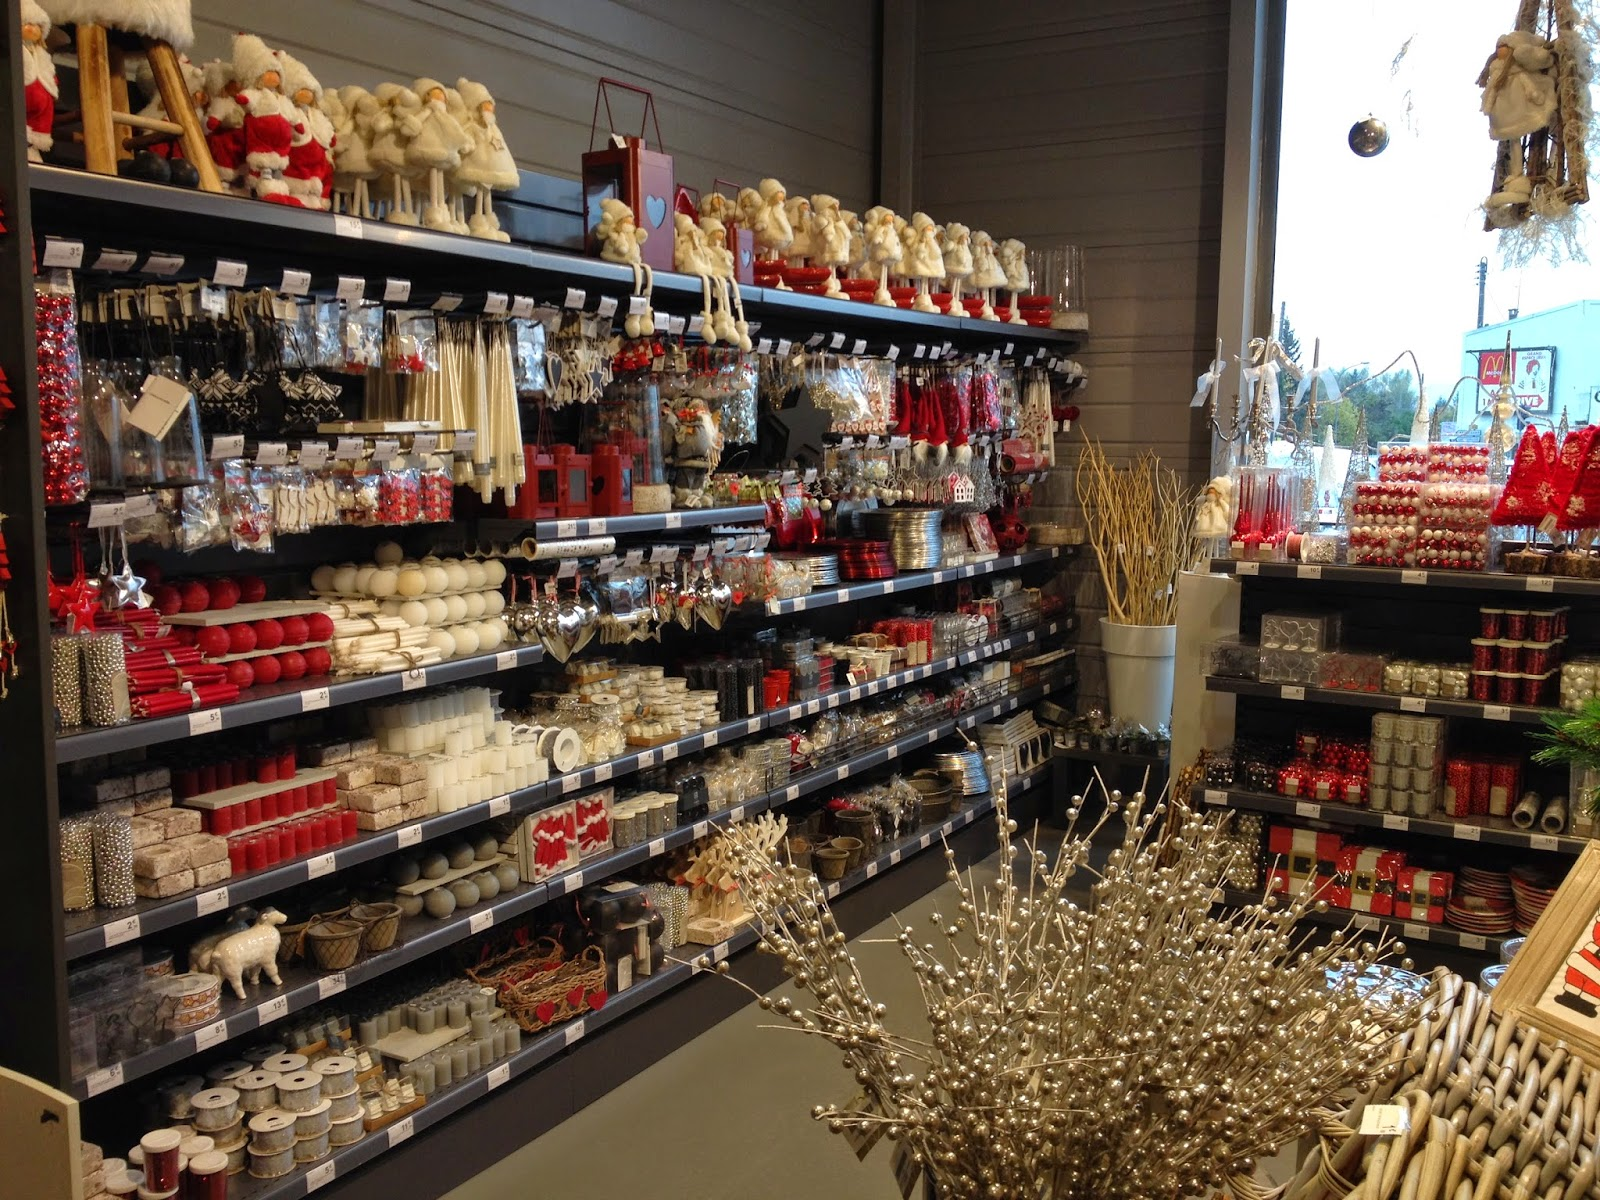 Magasin deco bapteme amiens - Magasin chaussure amiens ...